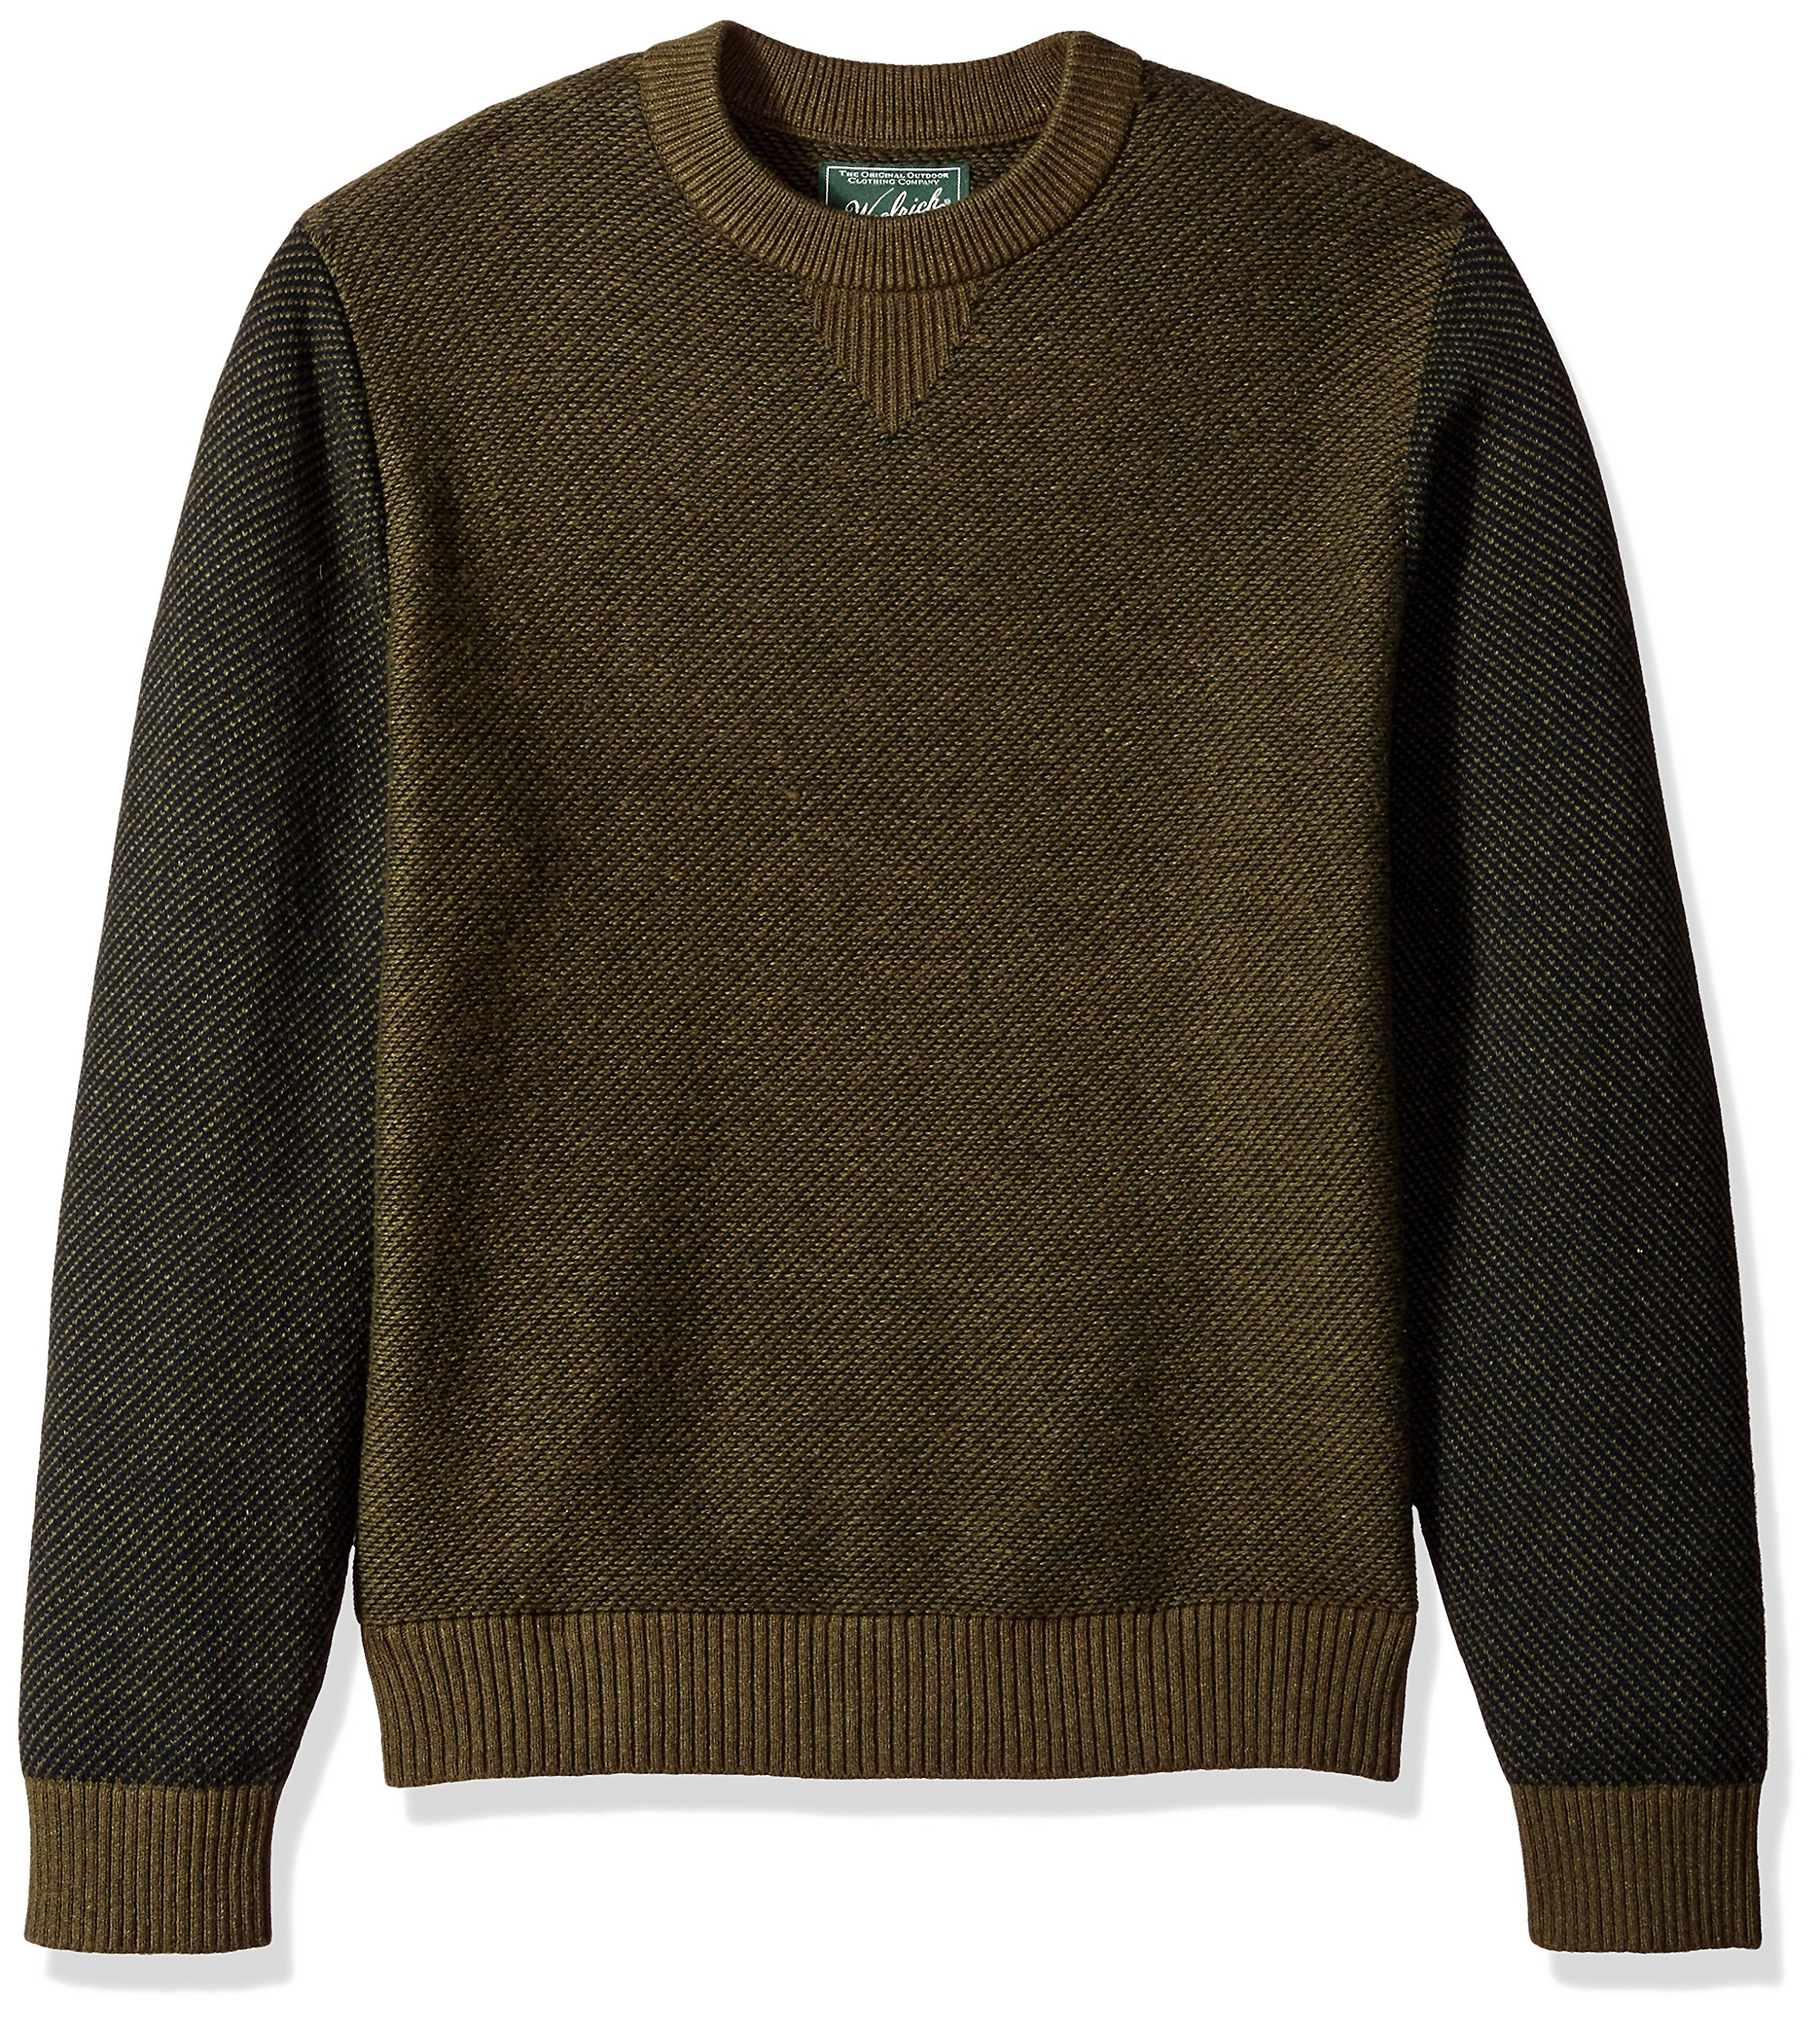 Woolrich Men's Twill Colorblock Merino Sweater, Olive, Large